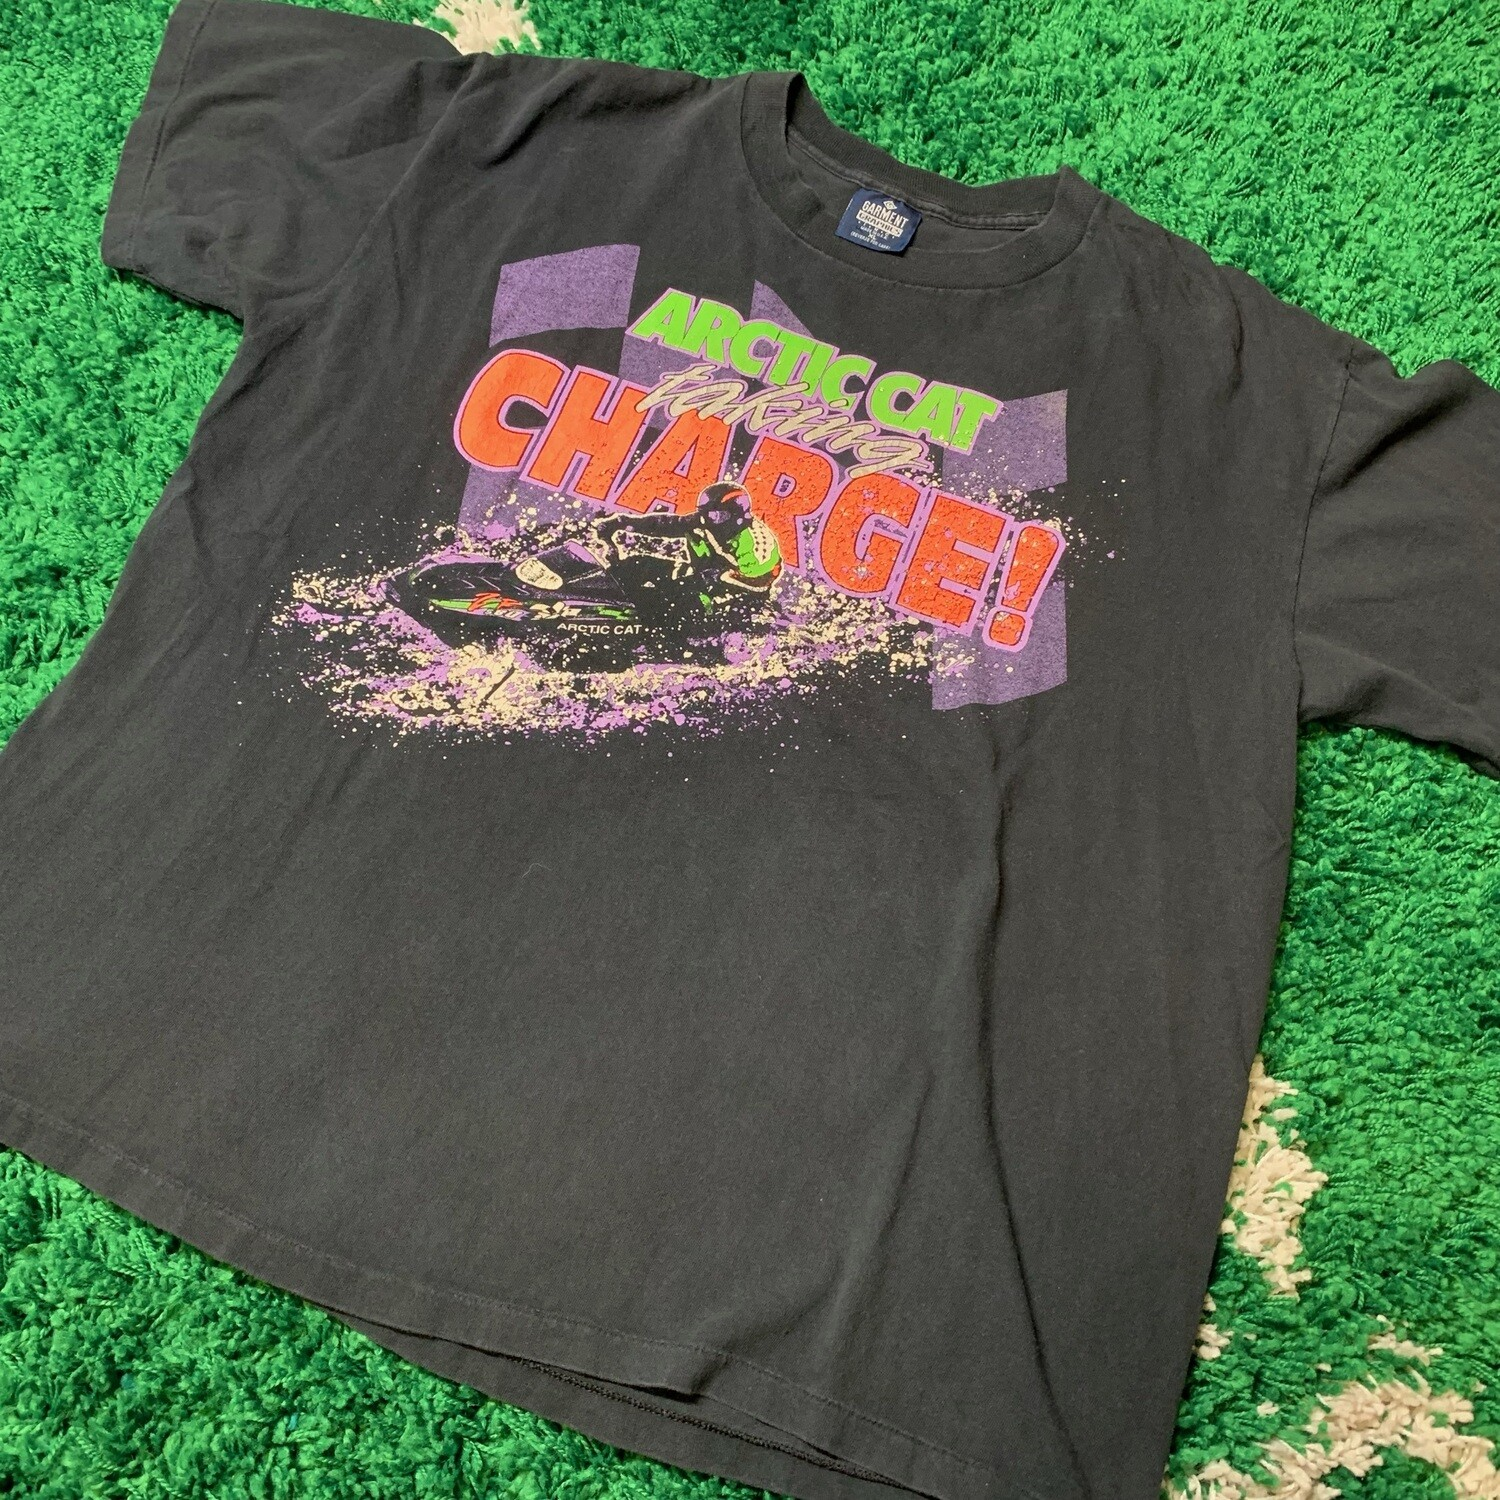 Artic Cat Taking Charge Tee Size XL